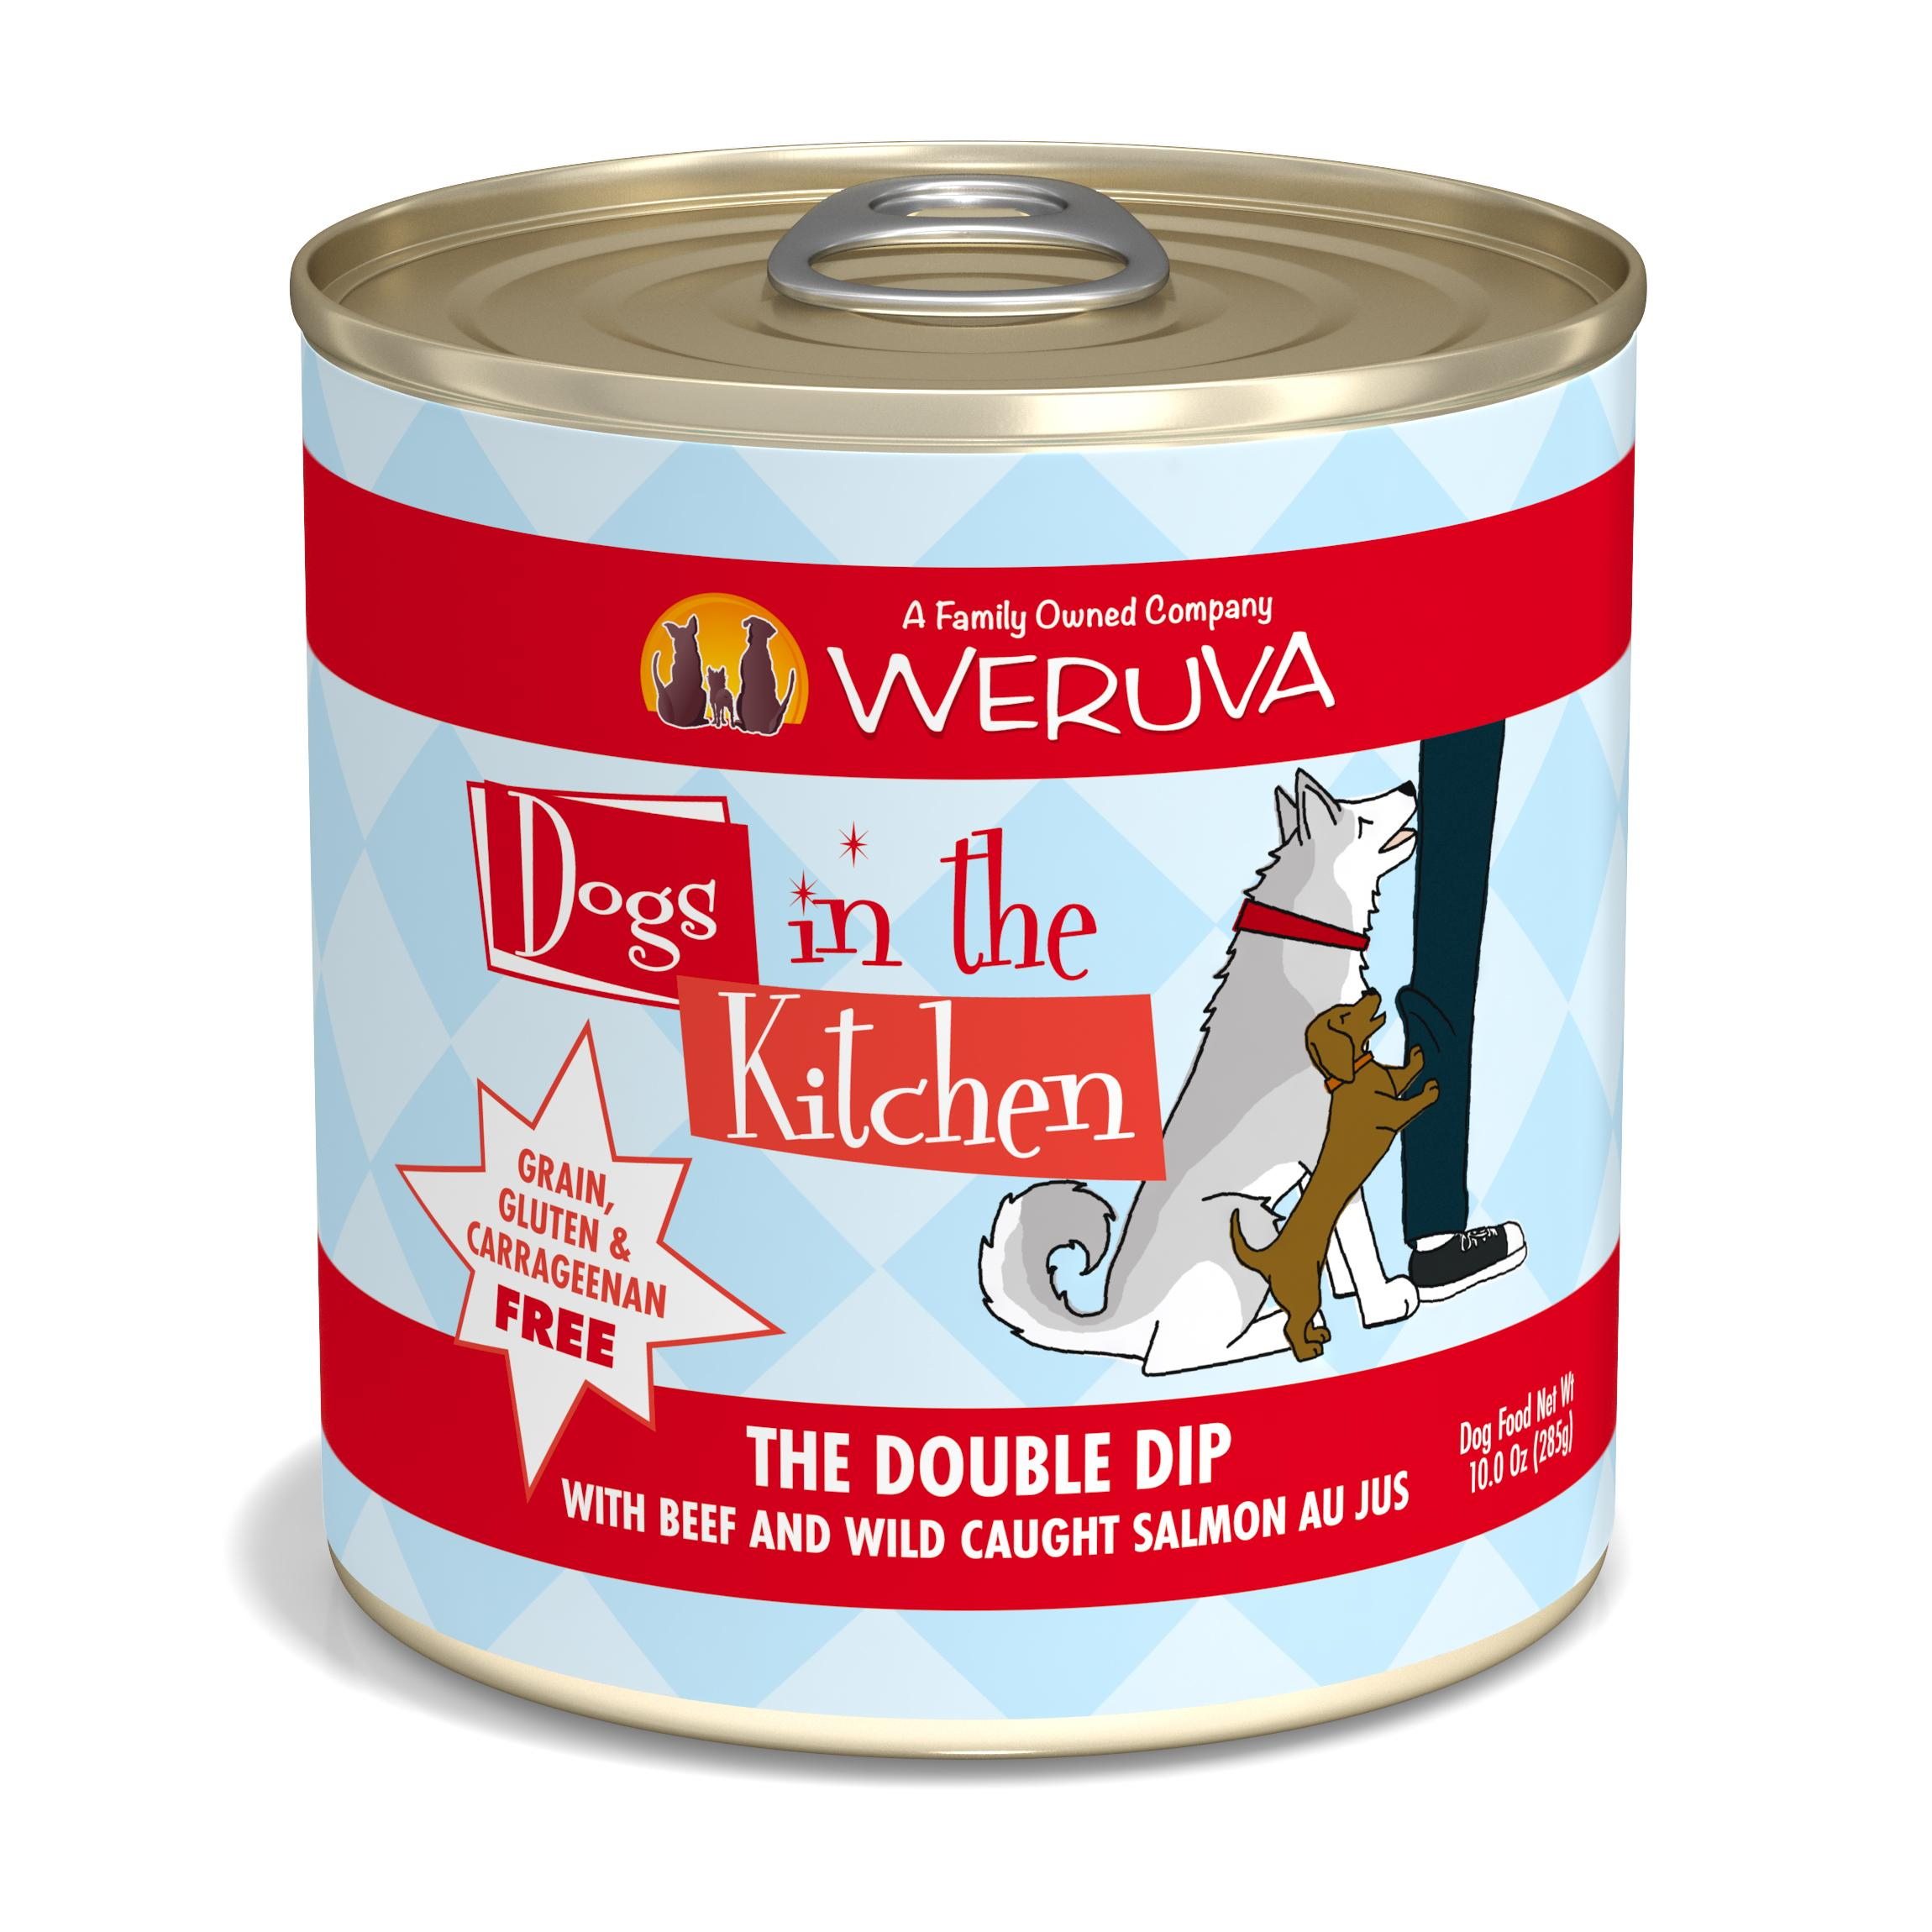 Weruva Dogs in the Kitchen The Double Dip with Beef & Wild Caught Salmon Au Jus Grain-Free Wet Dog Food, 10-oz can